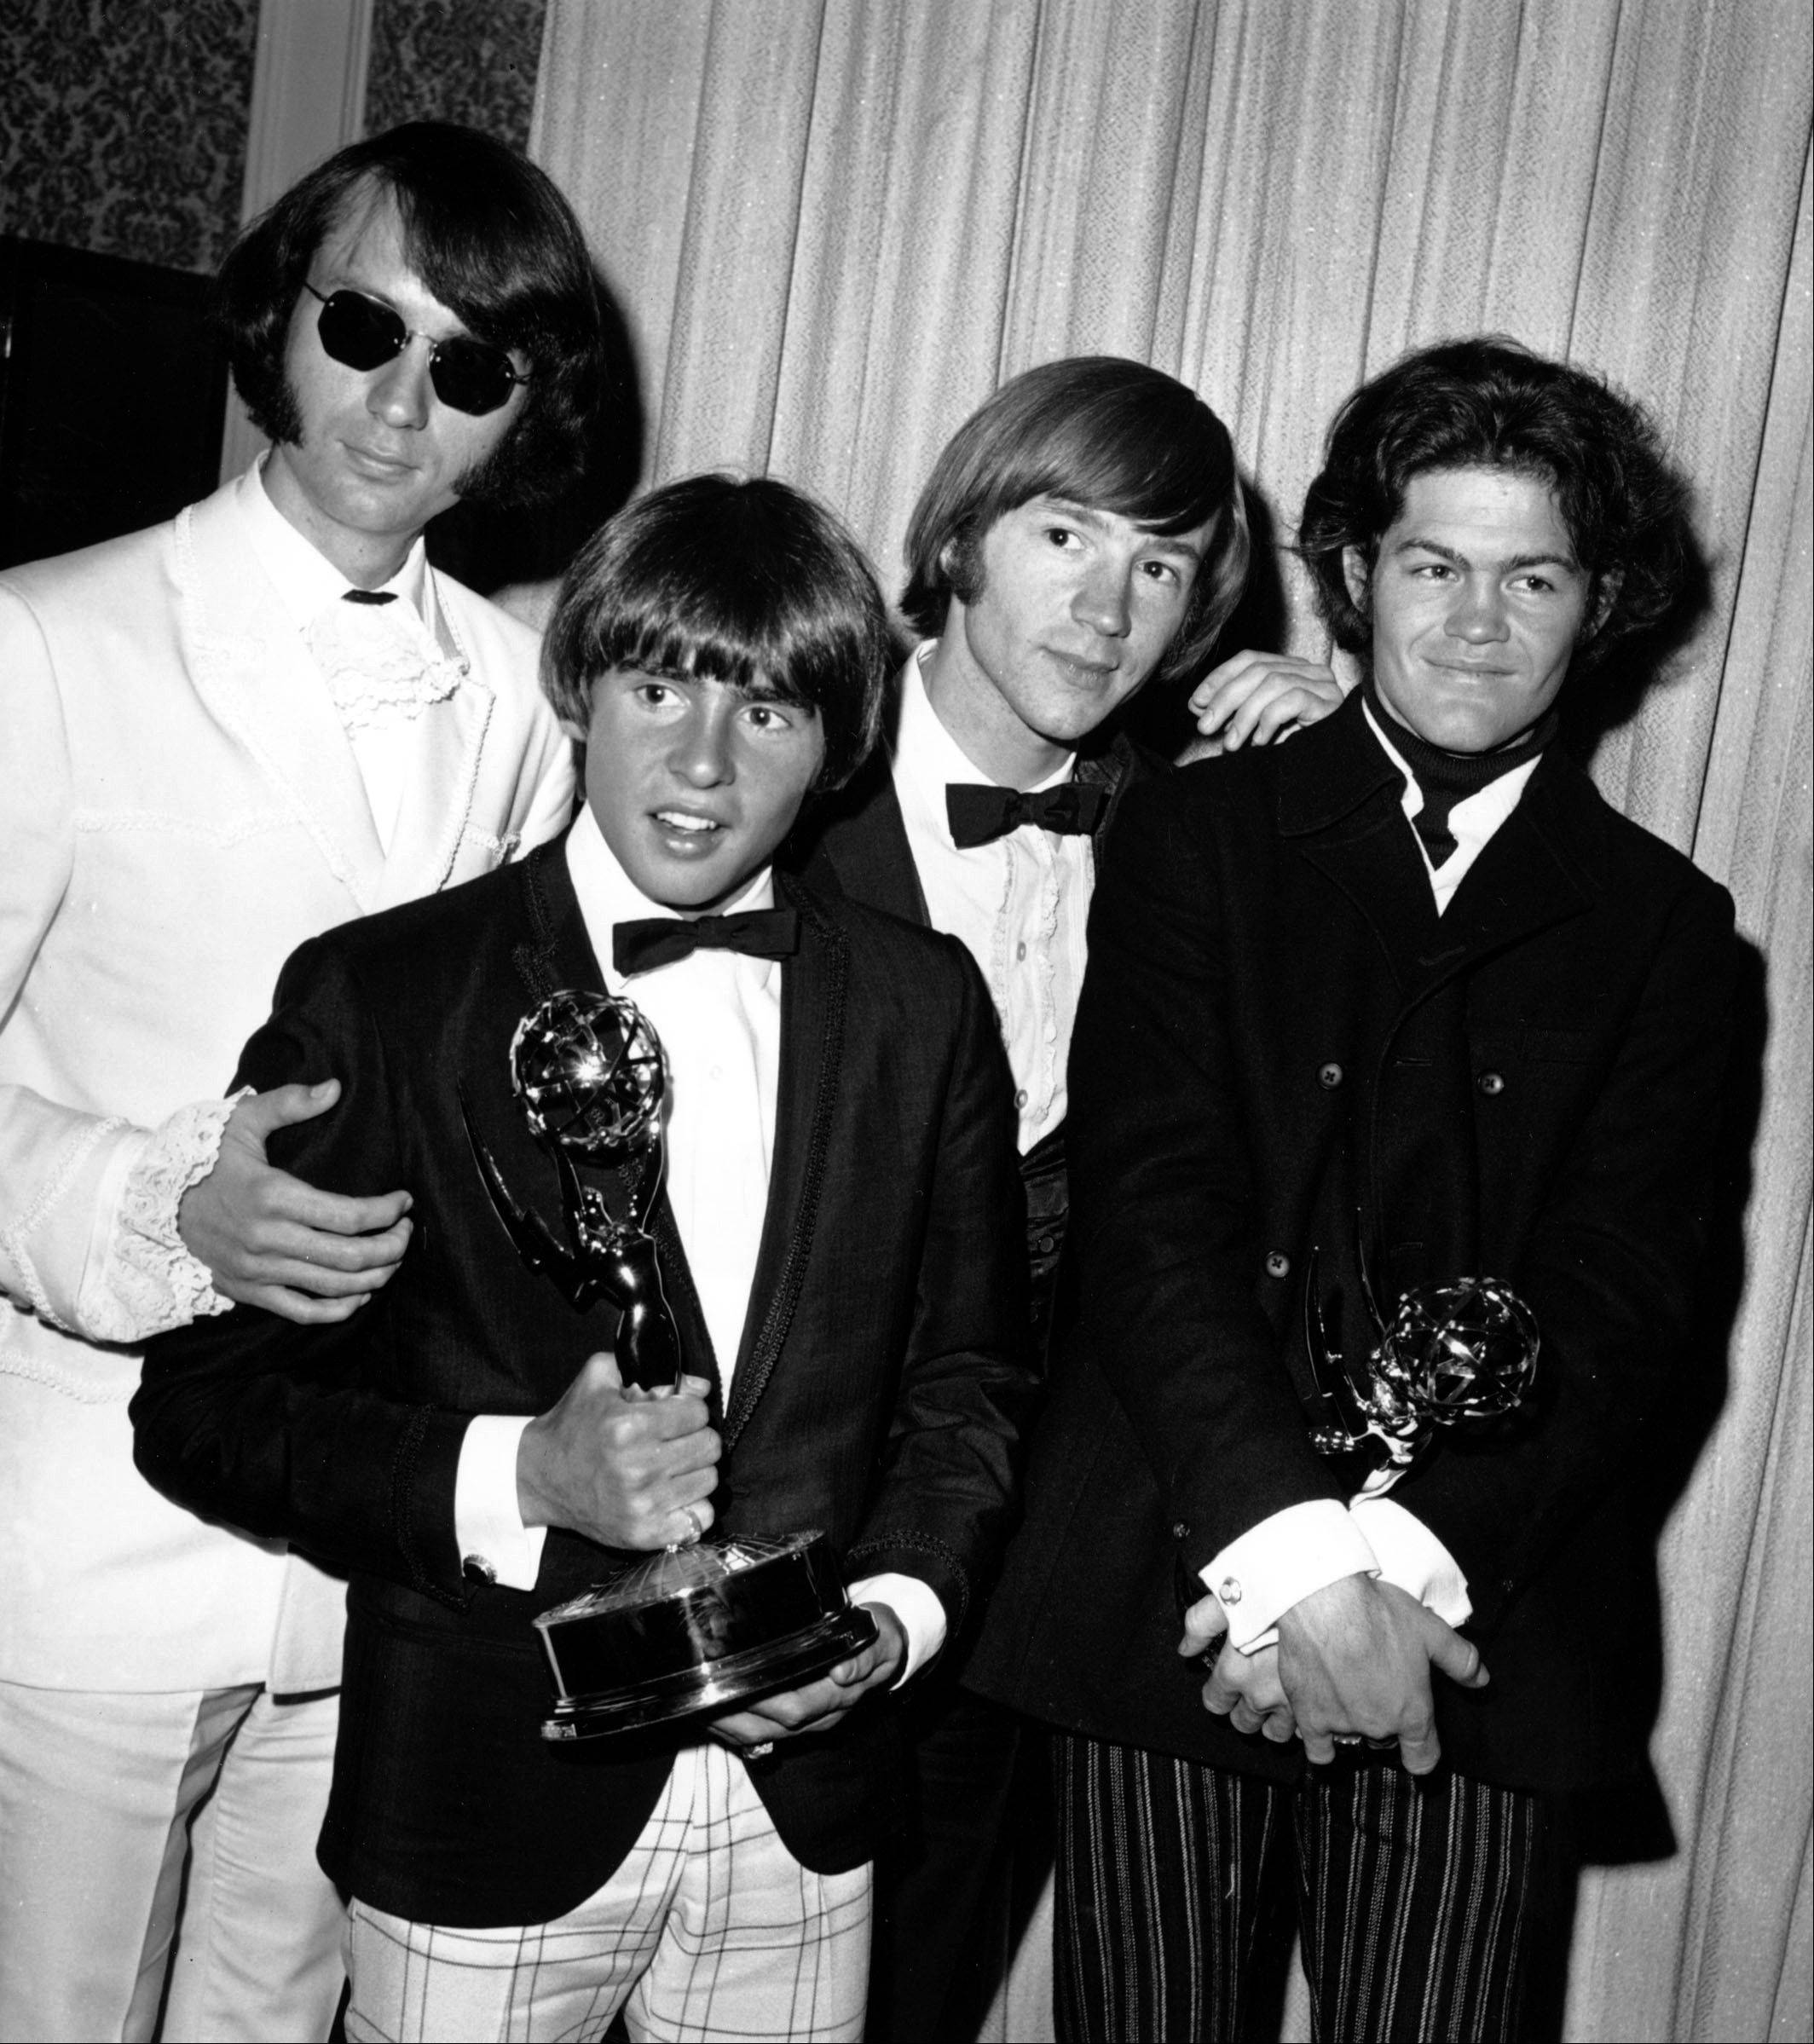 This June 4, 1967 file photo shows The Monkees posing with their Emmy award at the 19th Annual Primetime Emmy Awards in Calif. The group members are, from left to right, Mike Nesmith, Davy Jones, Peter Tork, and Micky Dolenz. Jones died Wednesday Feb. 29, 2012 in Florida. He was 66. Jones rose to fame in 1965 when he joined The Monkees, a British popular rock group formed for a television show.